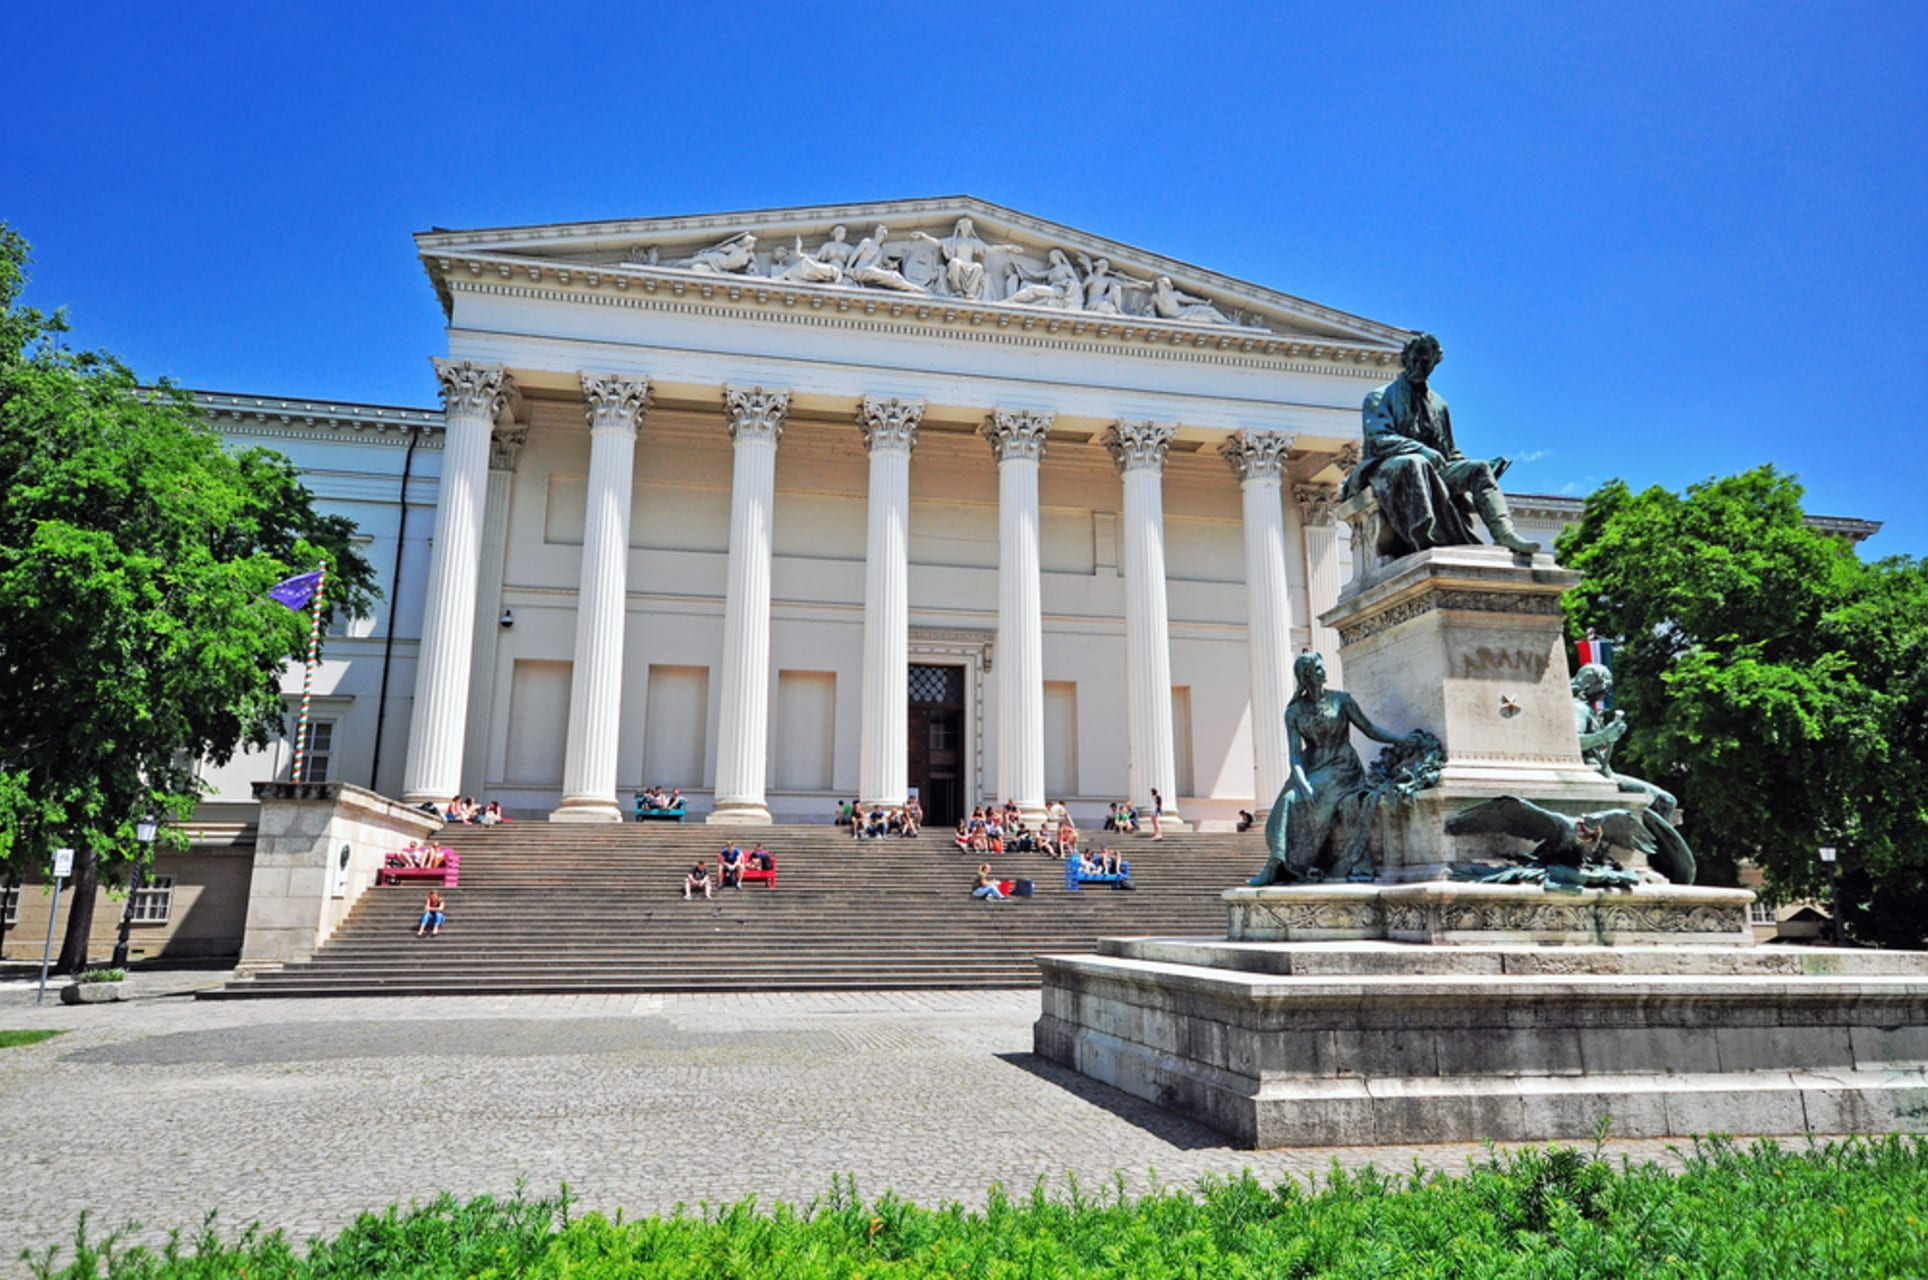 Budapest - Budapest's Architectural Gems Series: The Palace Quarter